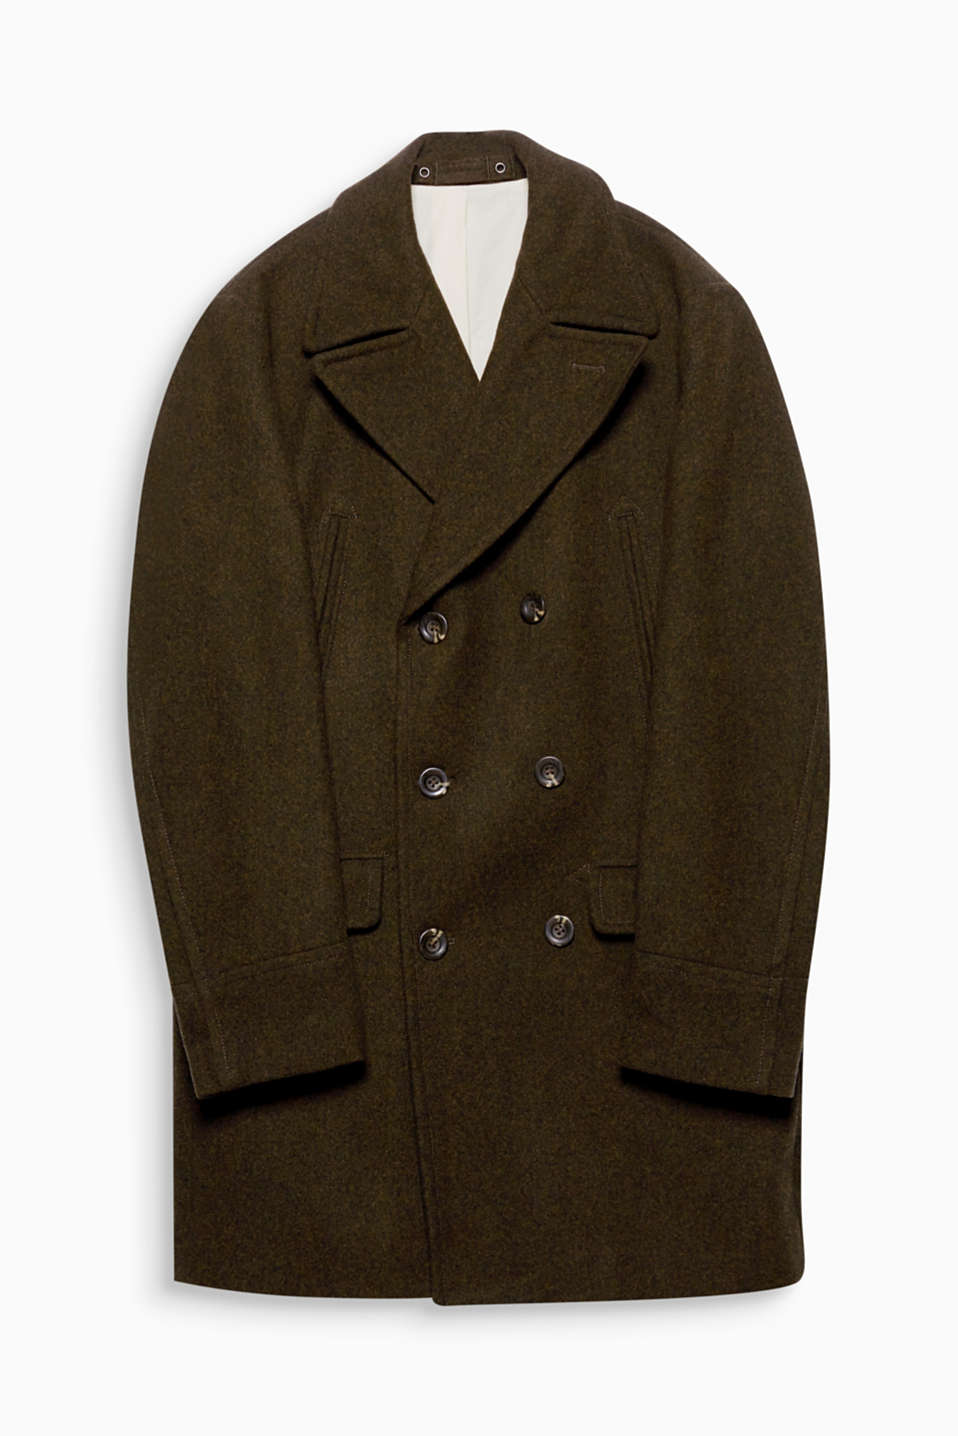 Double-breasted coats are THE autumn trend! This coat is also crafted from elegant blended wool.